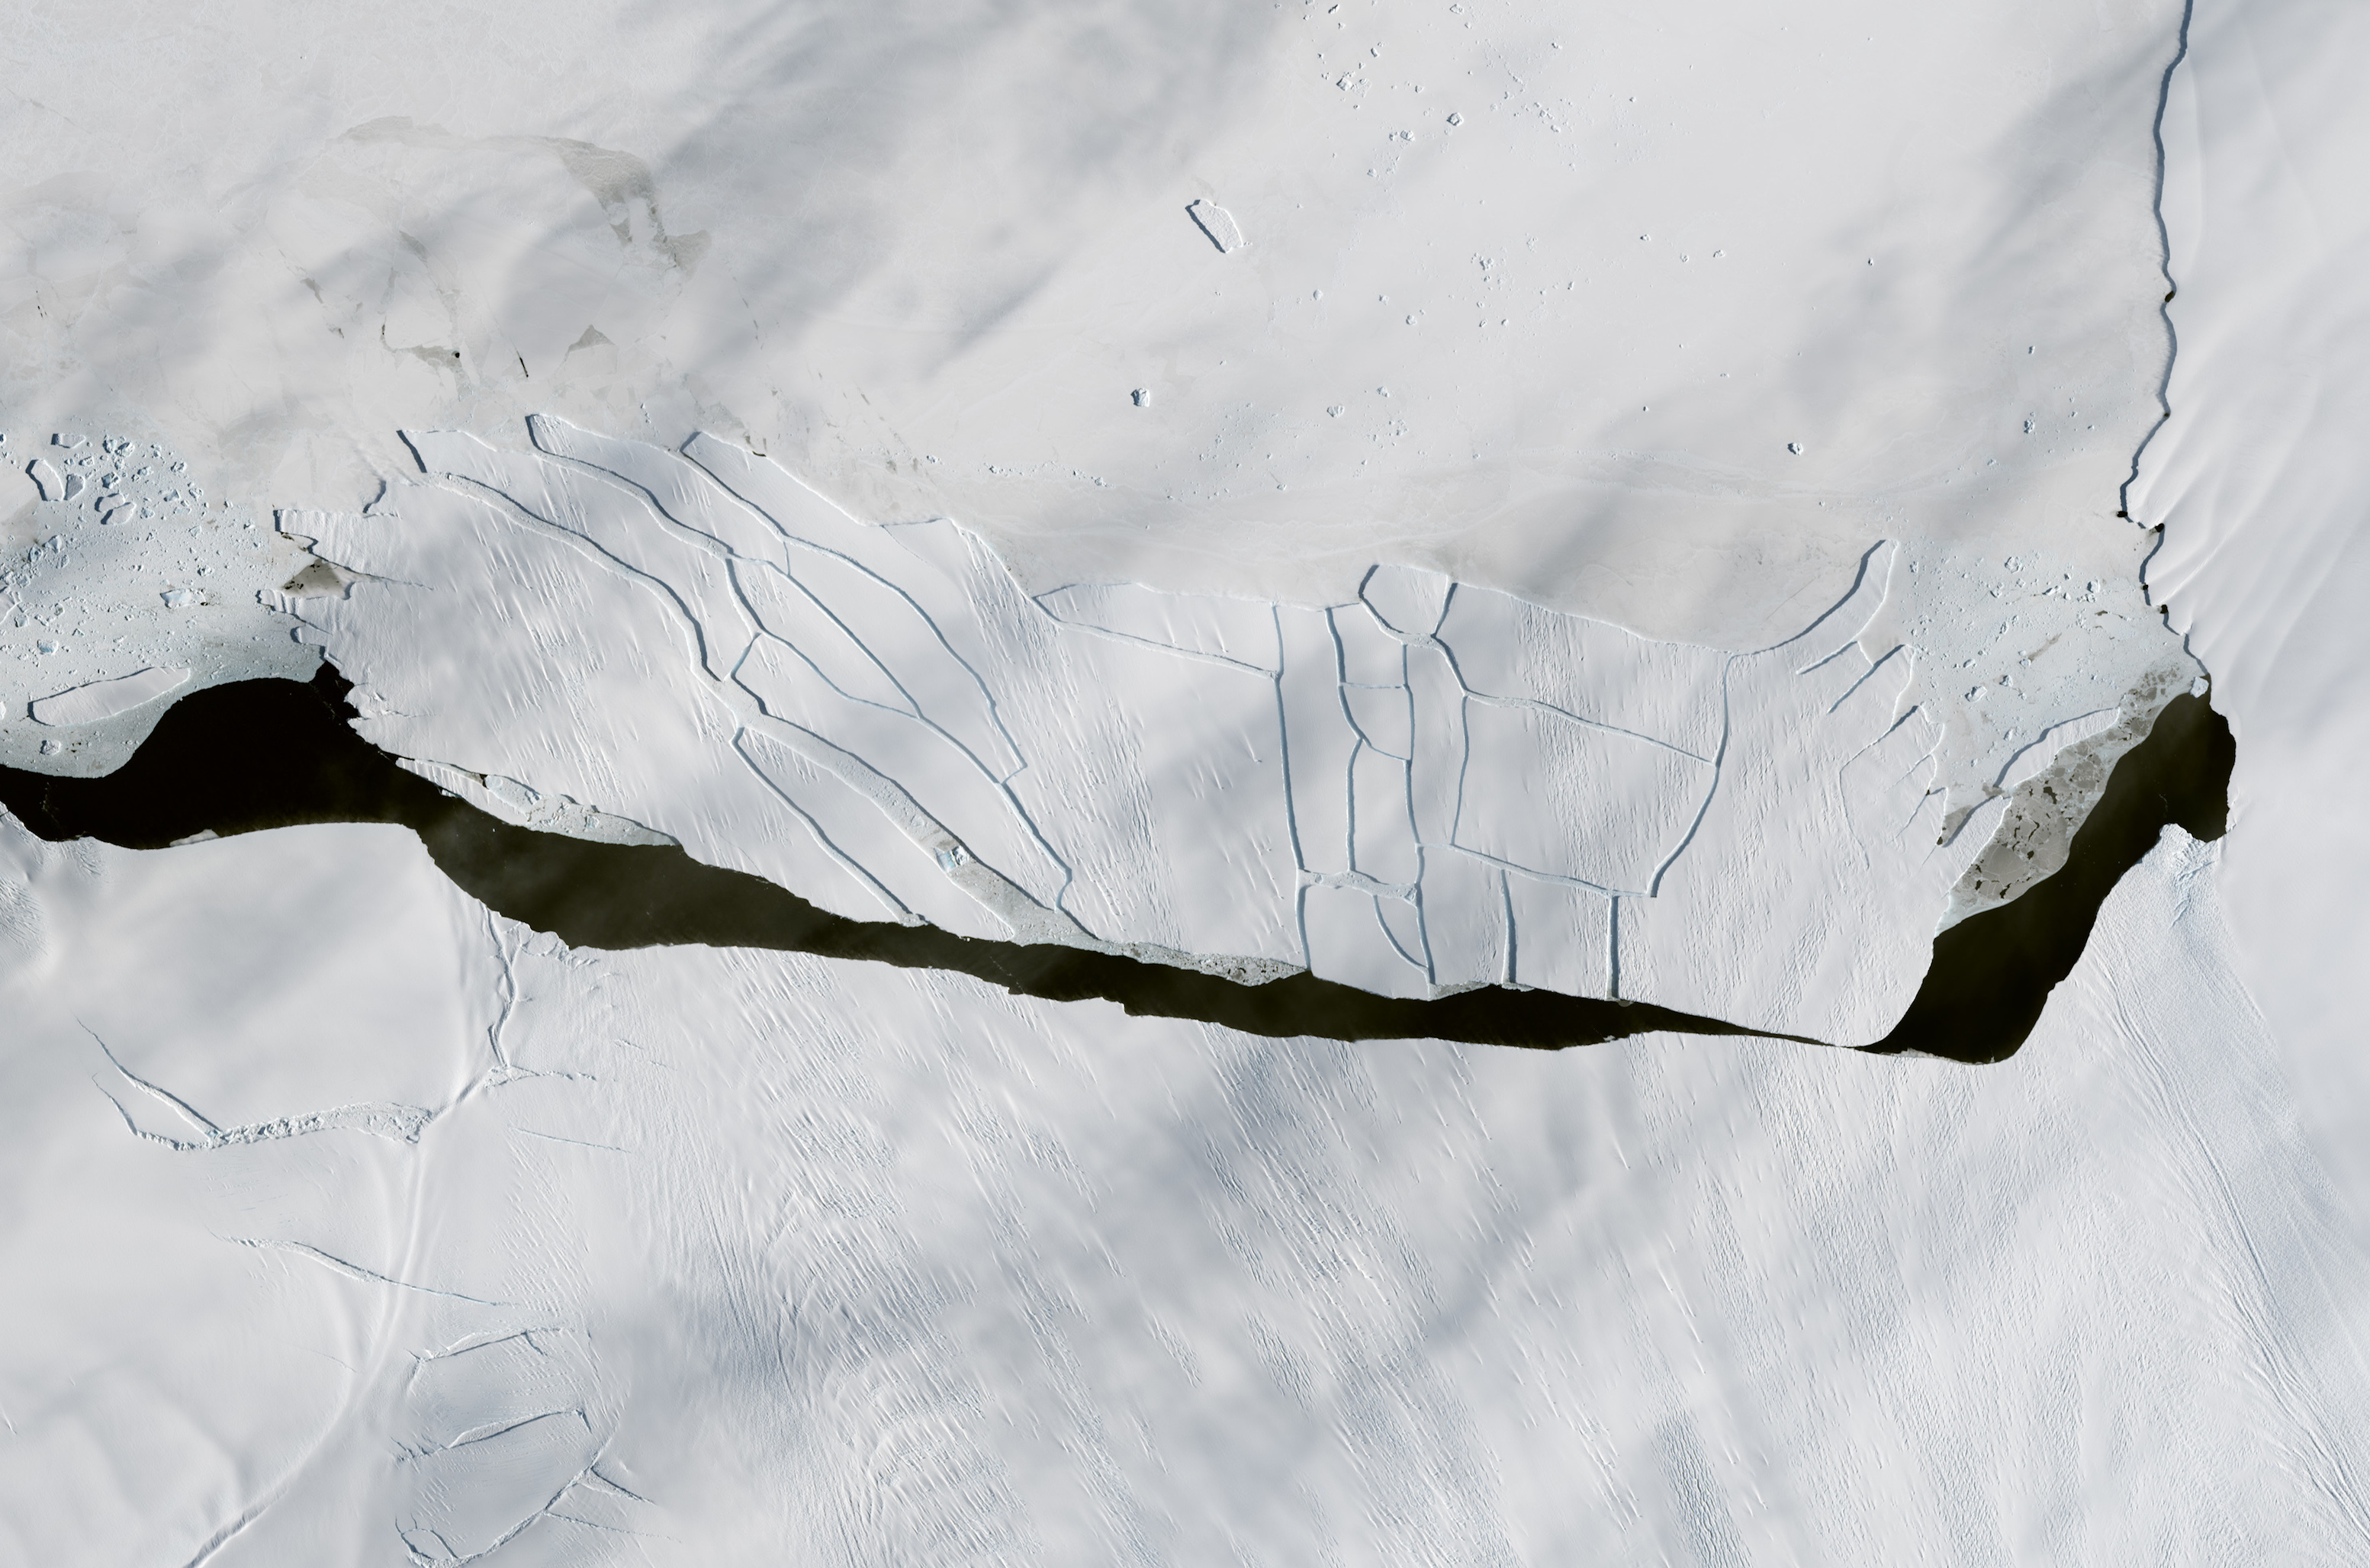 Today's Image of the Day features a look the B-44 iceberg, which broke off the Pine Island Glacier in Antarctica last month.